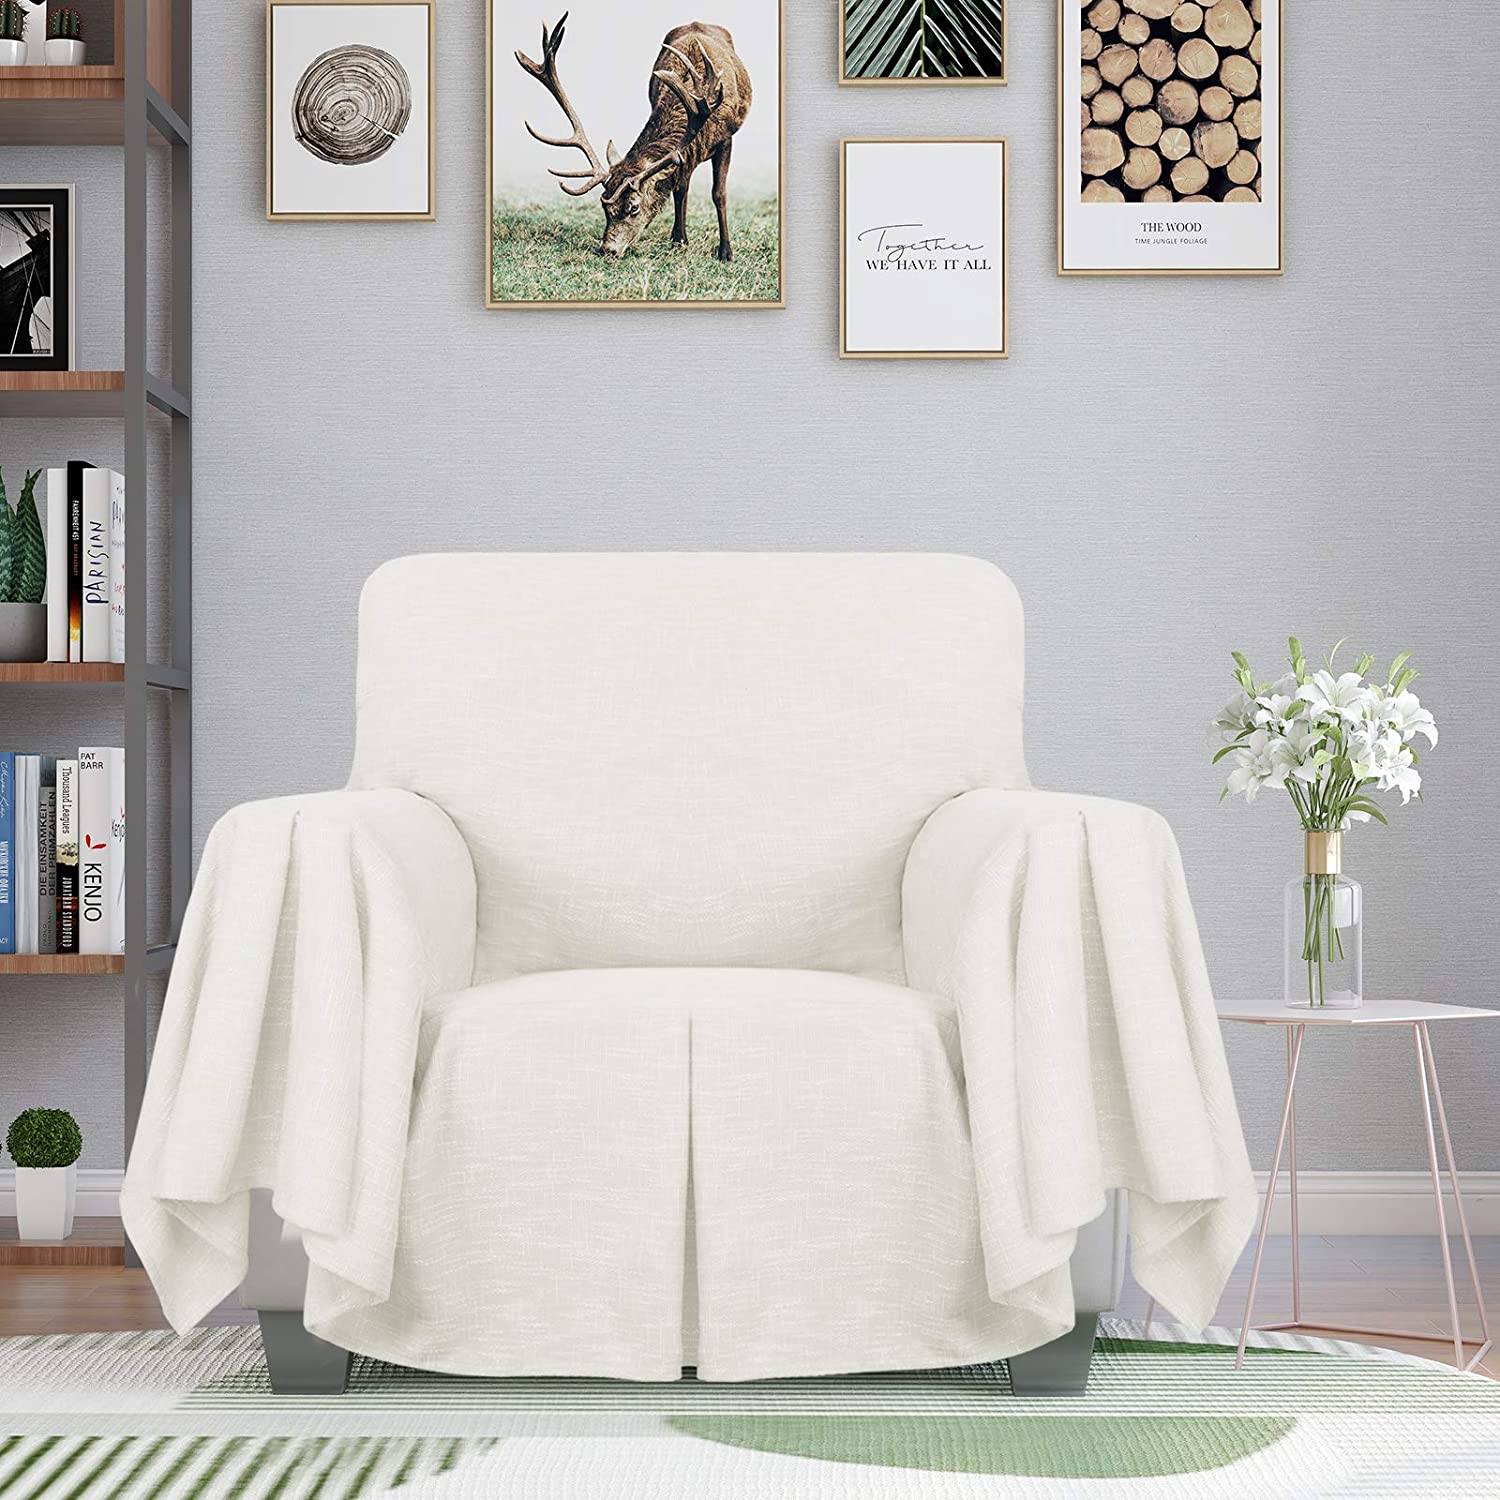 ZNSAYOTX 1 Piece Chair Throw Covers with Arms All Purpose Armchair Slipcovers for Living Room Elastic Slip Cover Pet Dog Washable Furniture Protector with Ruffles (Chair, Off White)